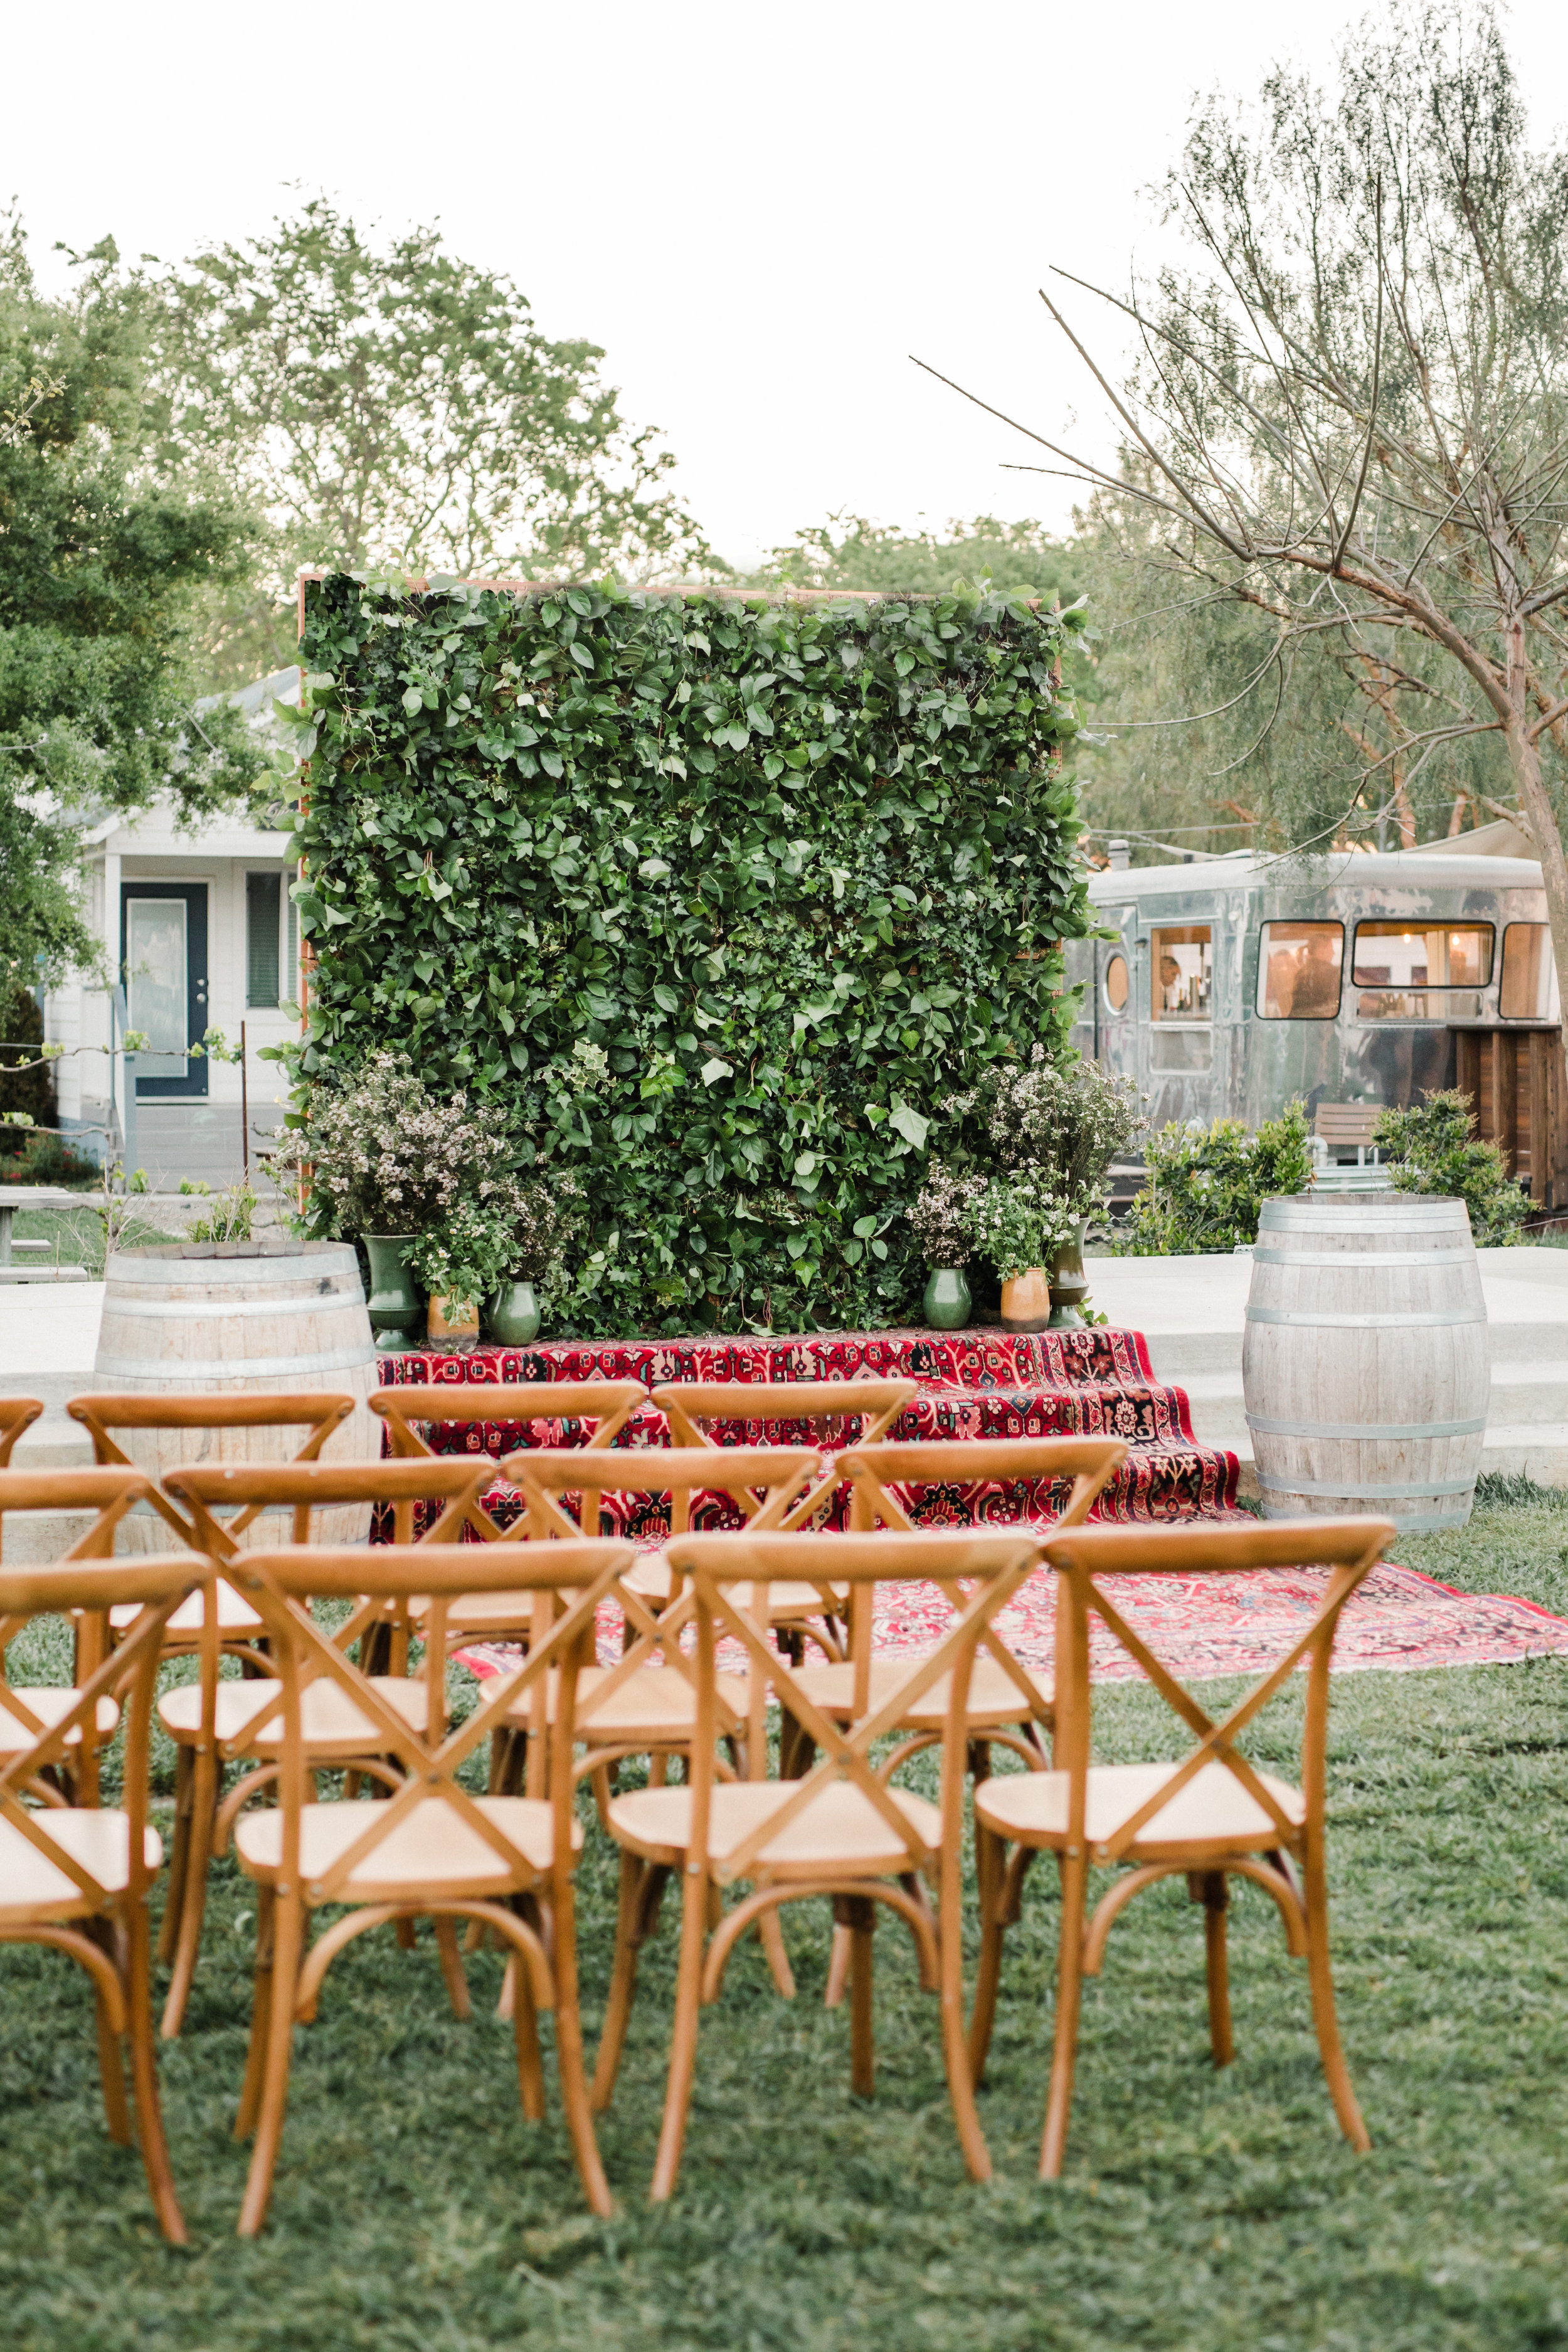 Live Wall by @eventplanting >>rug by @tigerlilyrentals>>tables & bar @allheartrentals>>florals @ellaandlouieflowers>>photographer @annadelores & @highwaywestvacations & @amazingdayevents